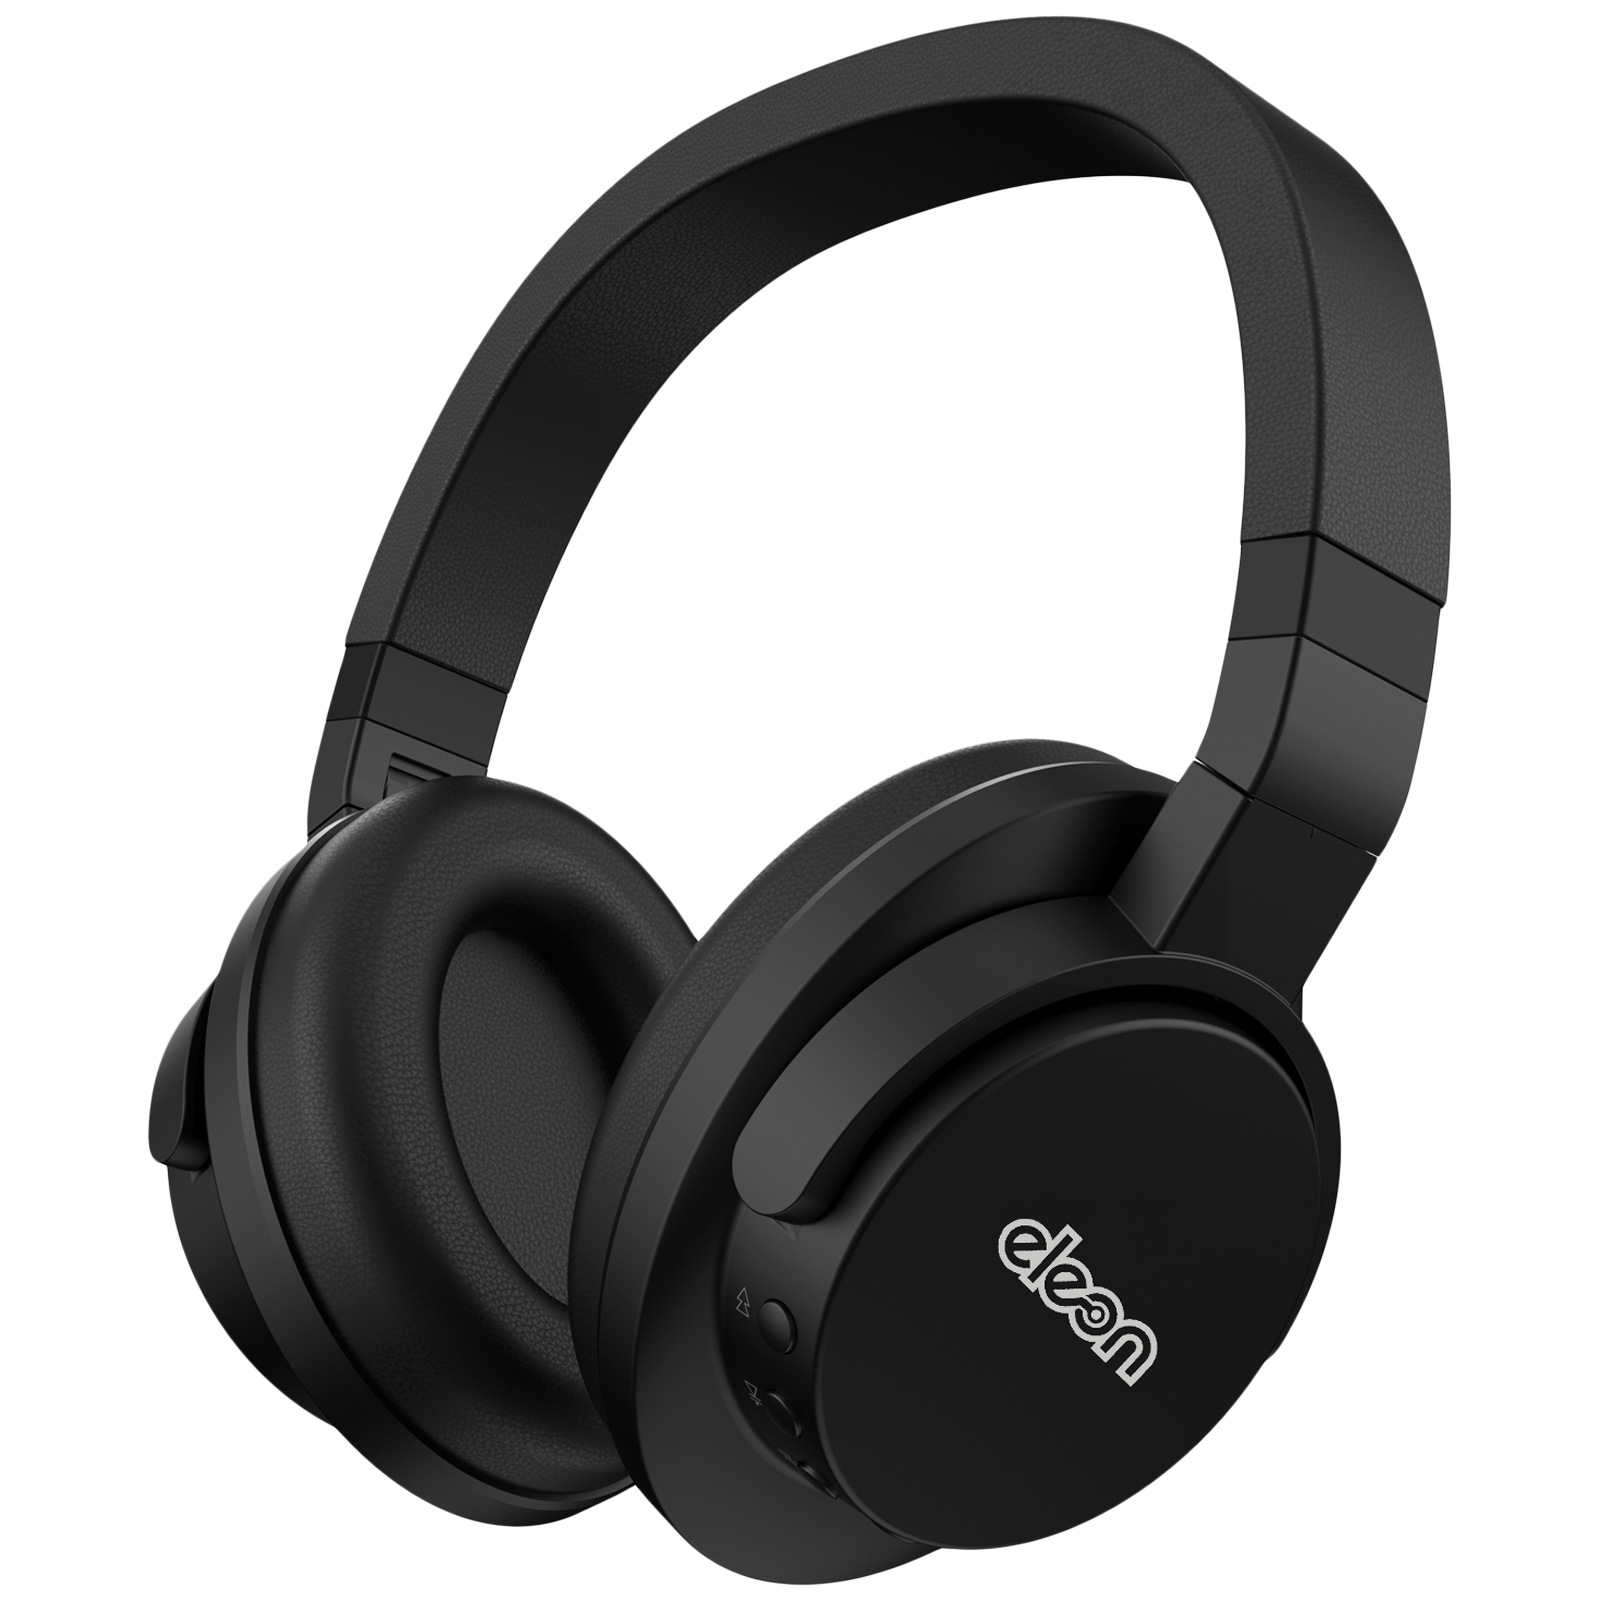 Eleon Dhani On-Ear Active Noise Cancellation Wireless Headphone with Mic (Bluetooth 5.0, Stereo Sound, ELEA7324, Black)_1